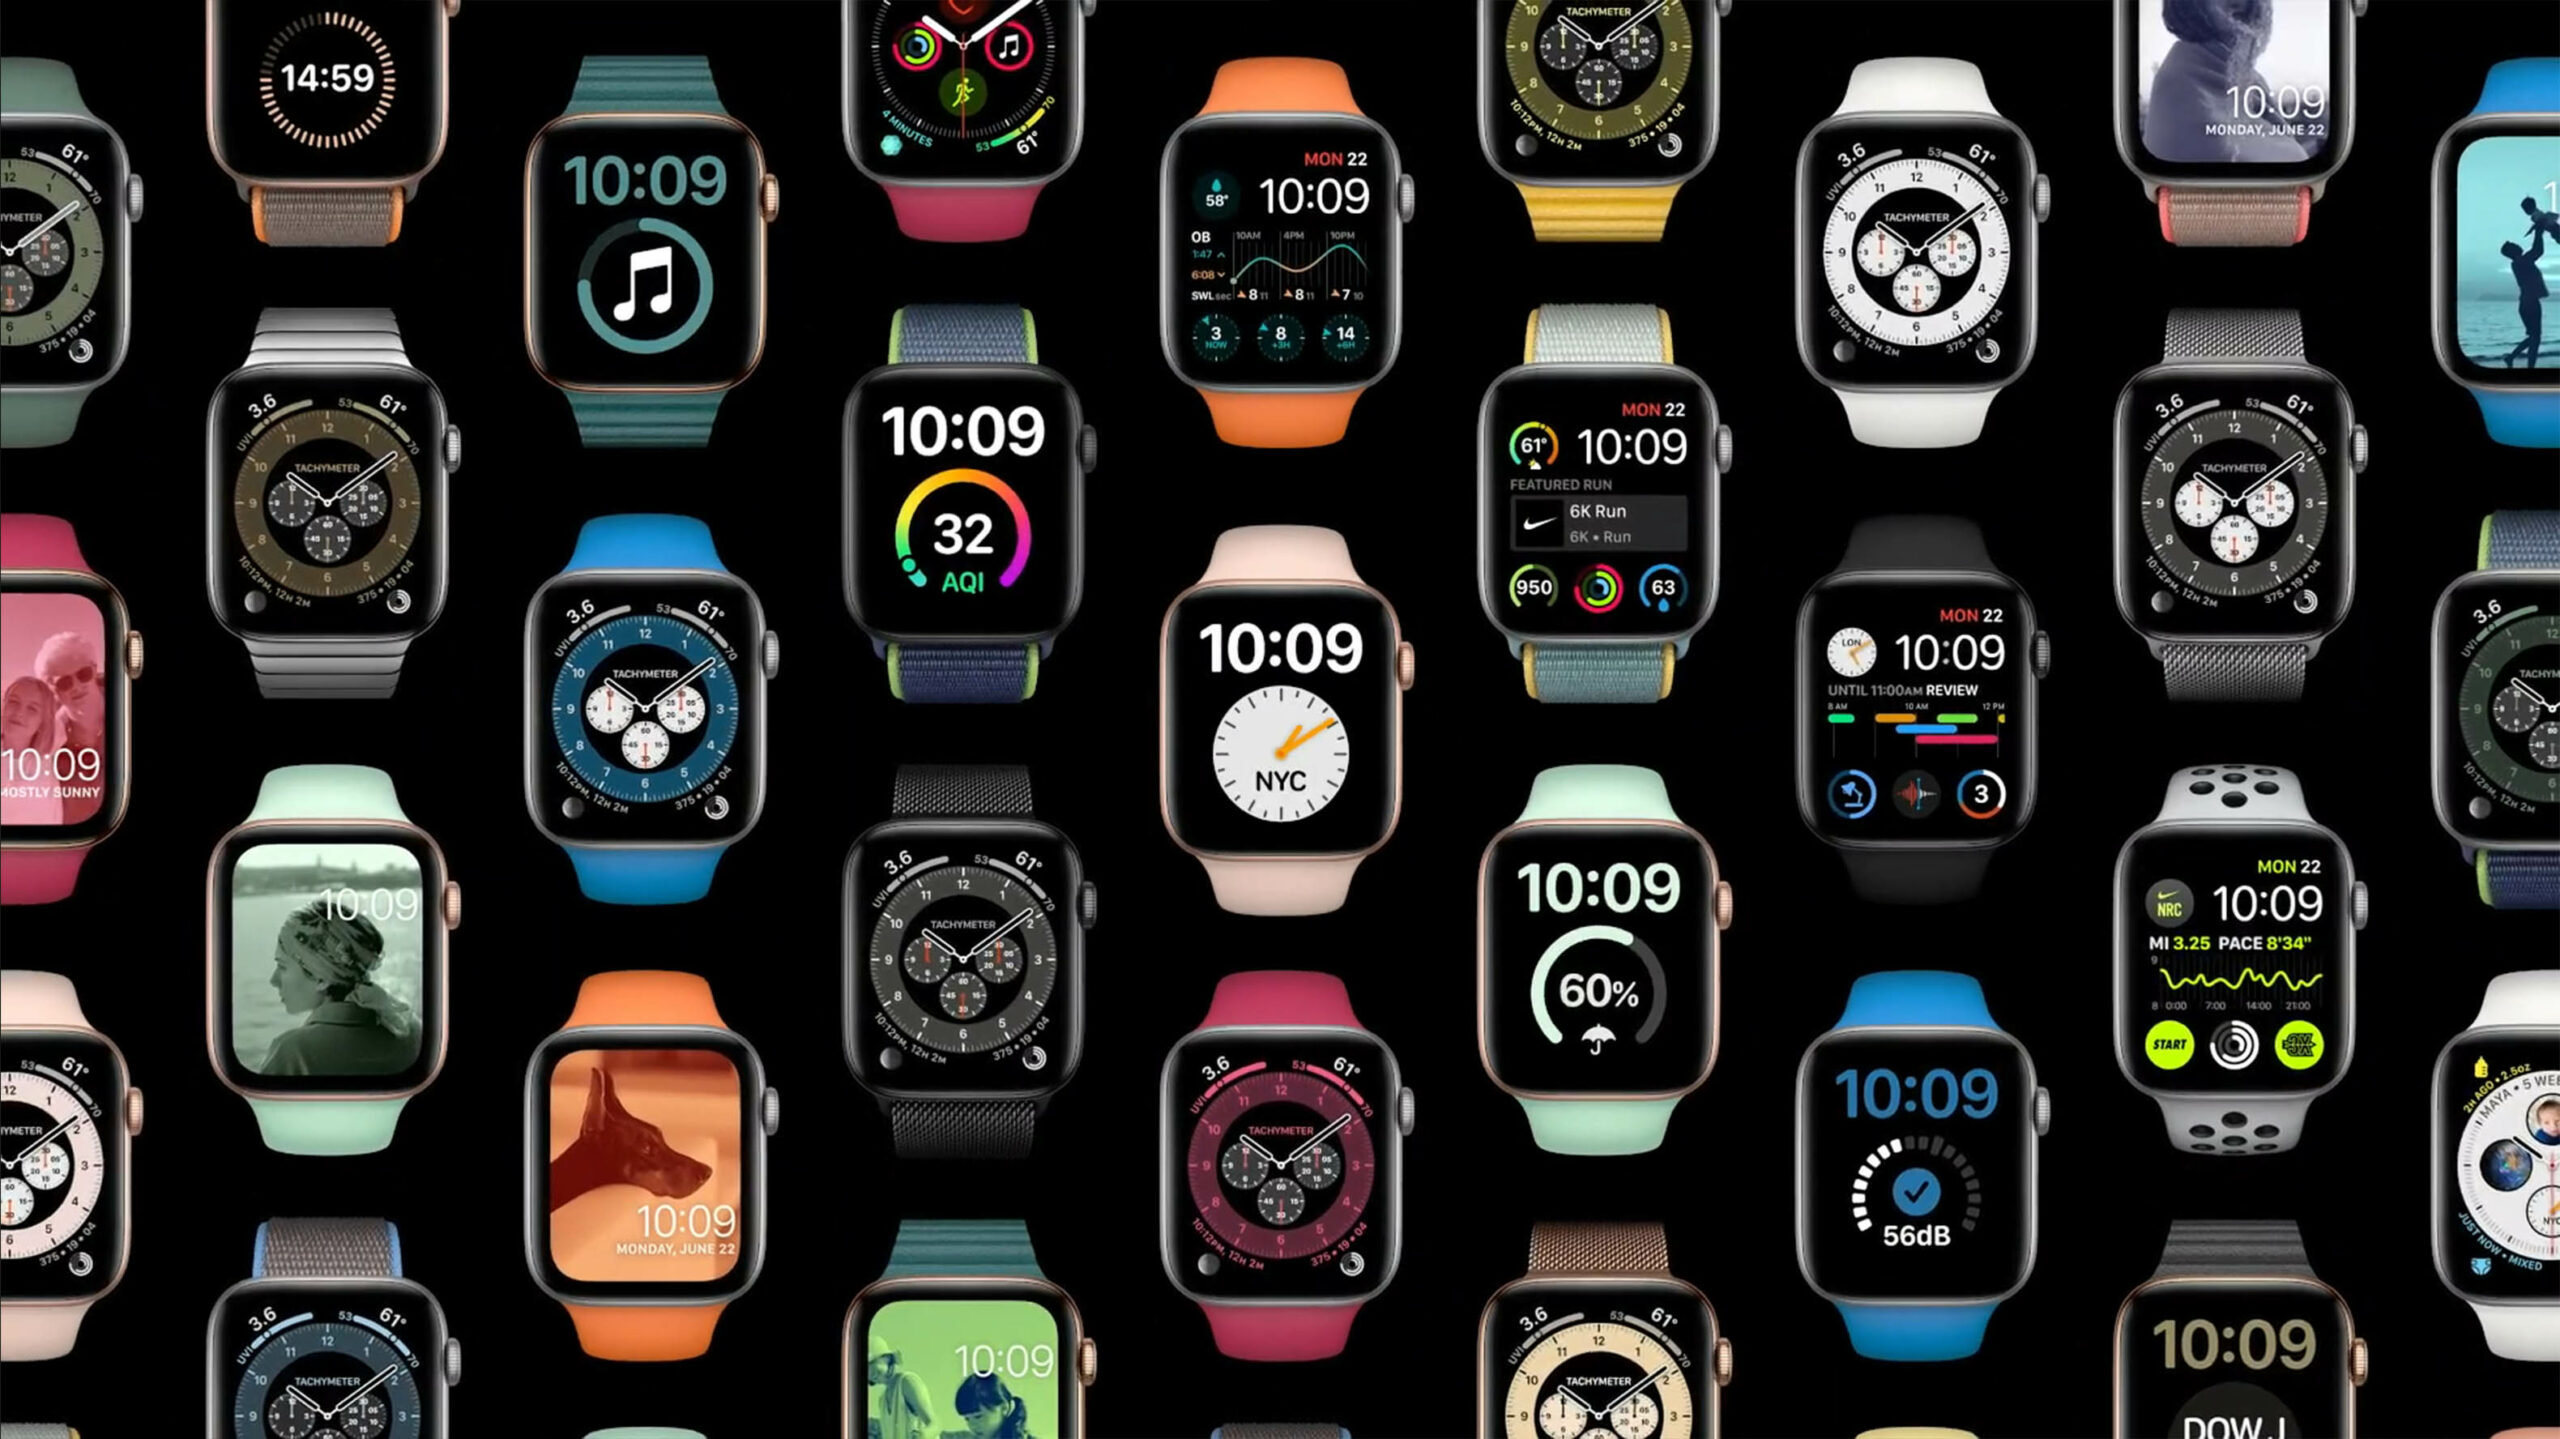 Apple Watch gets 'Sleep tracking' and more in watchOS 7